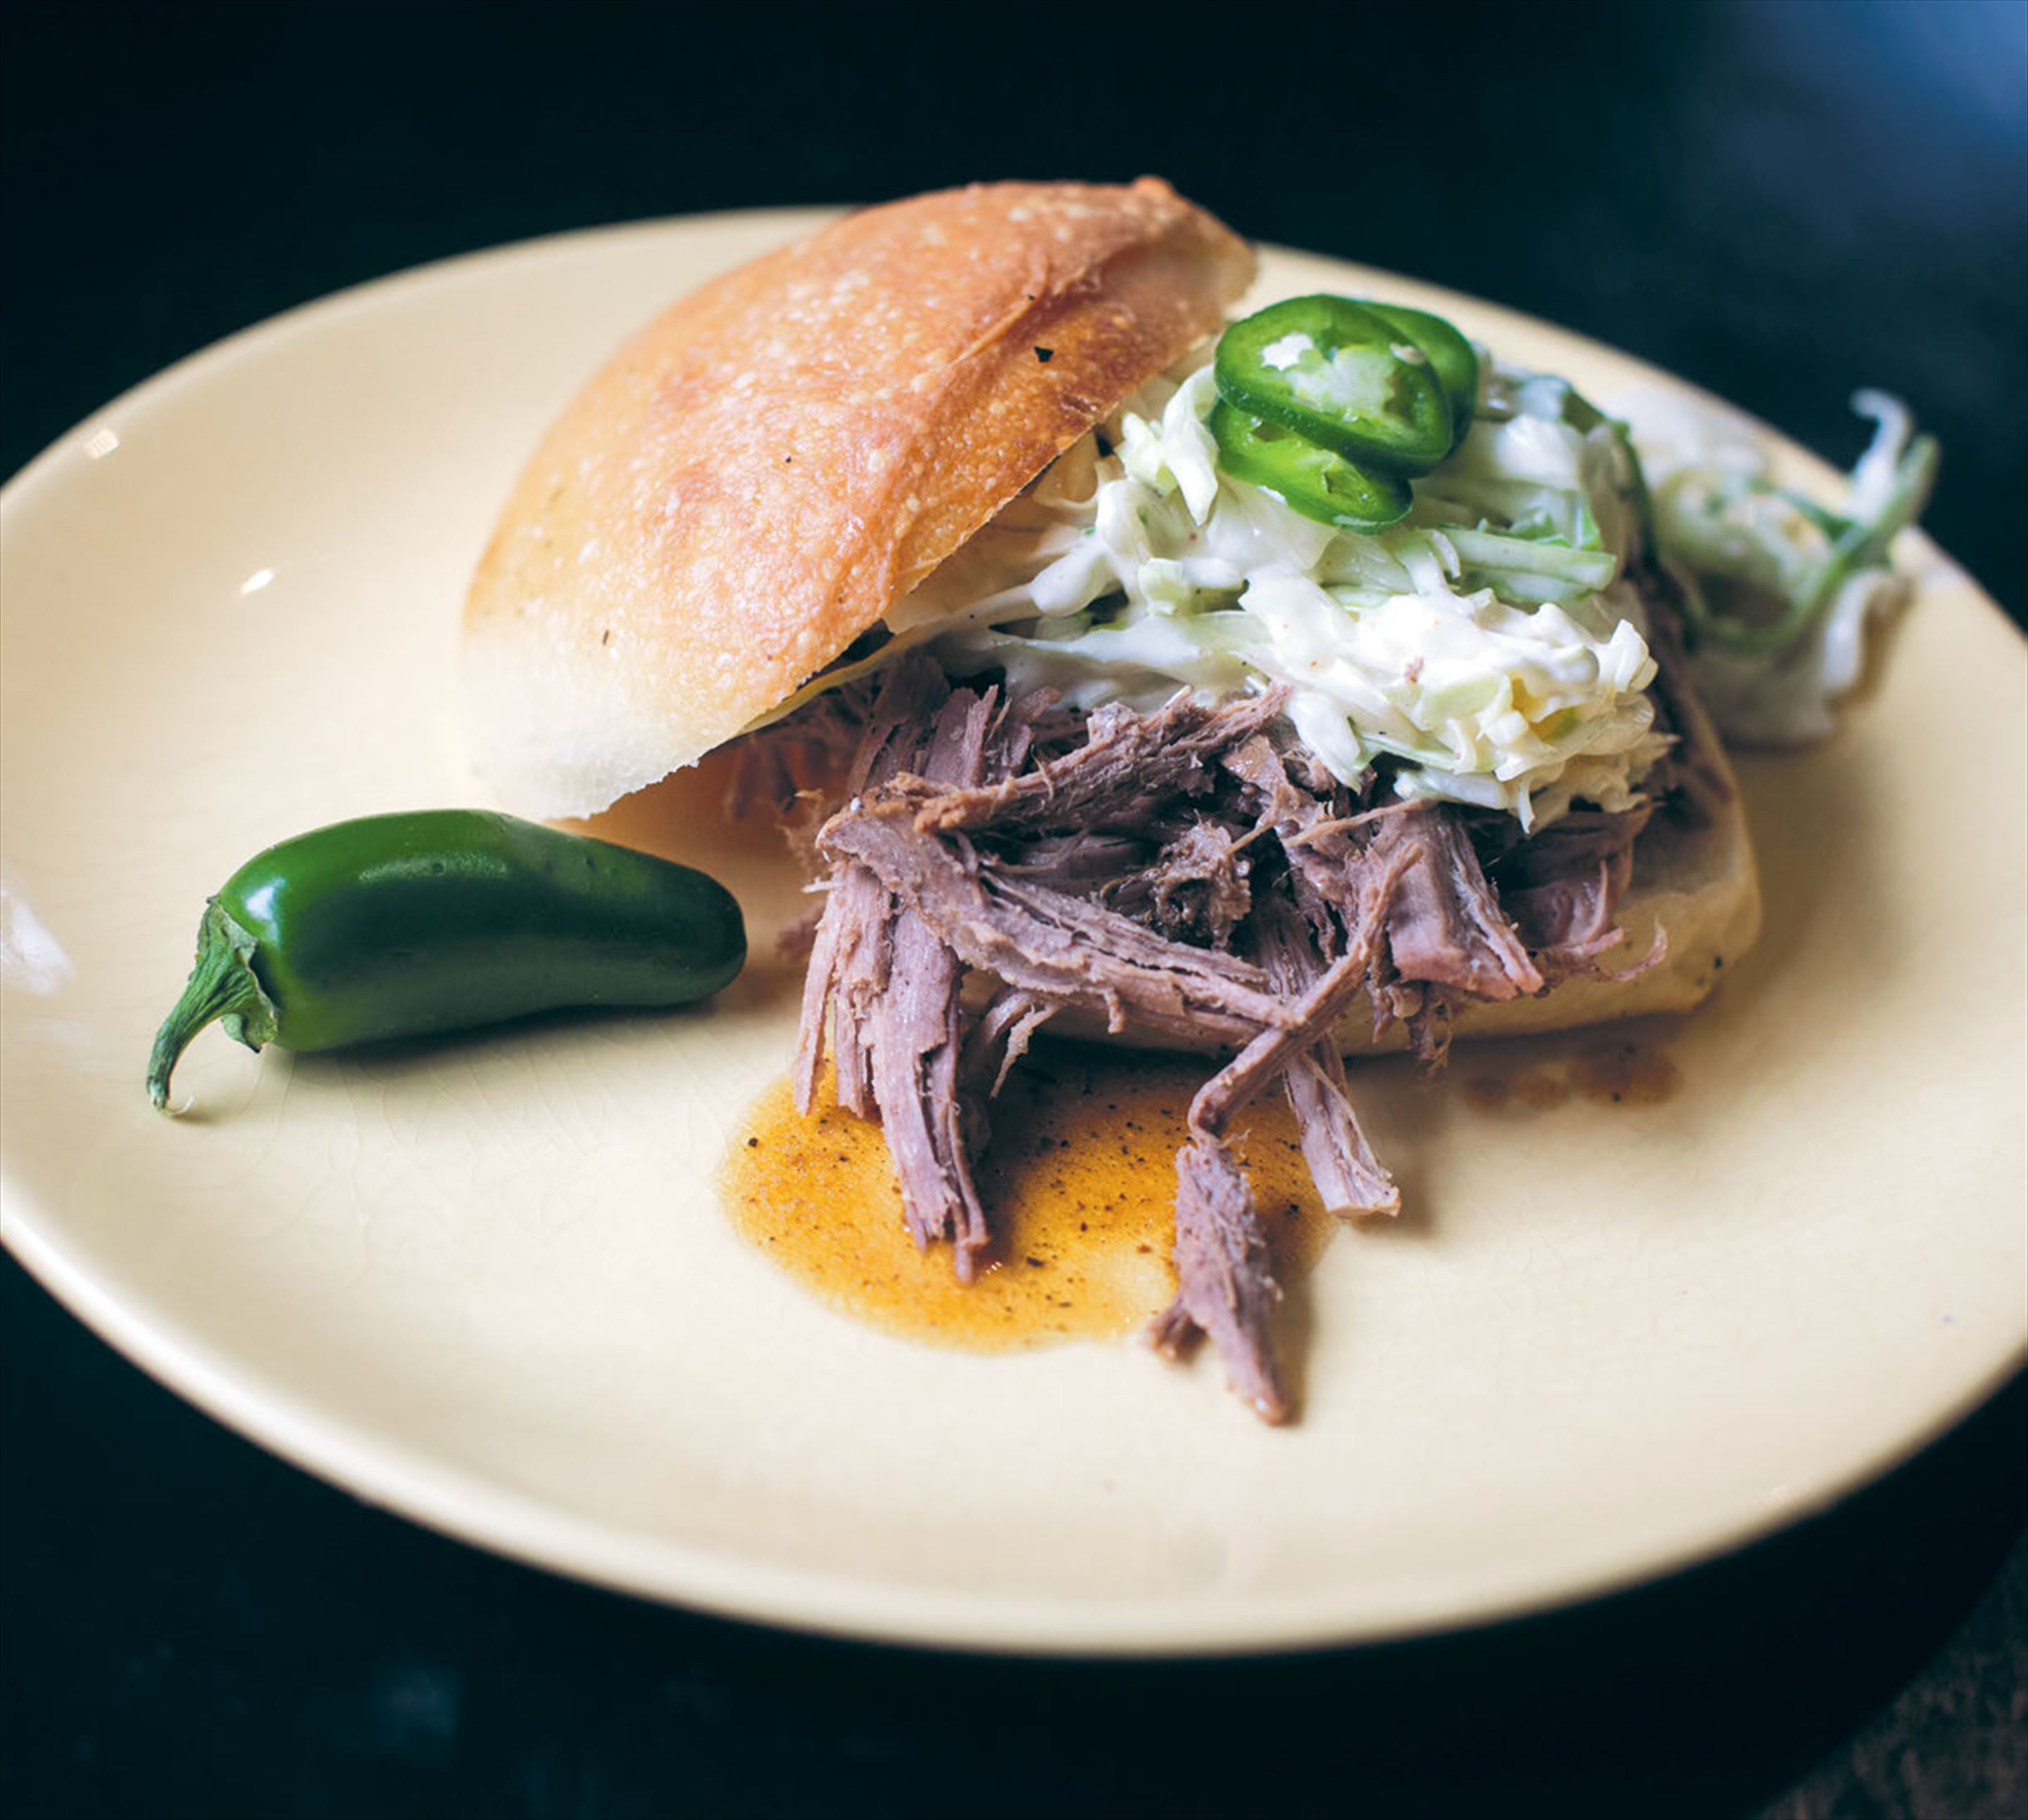 Lazy & slow pork 'n' slaw buns